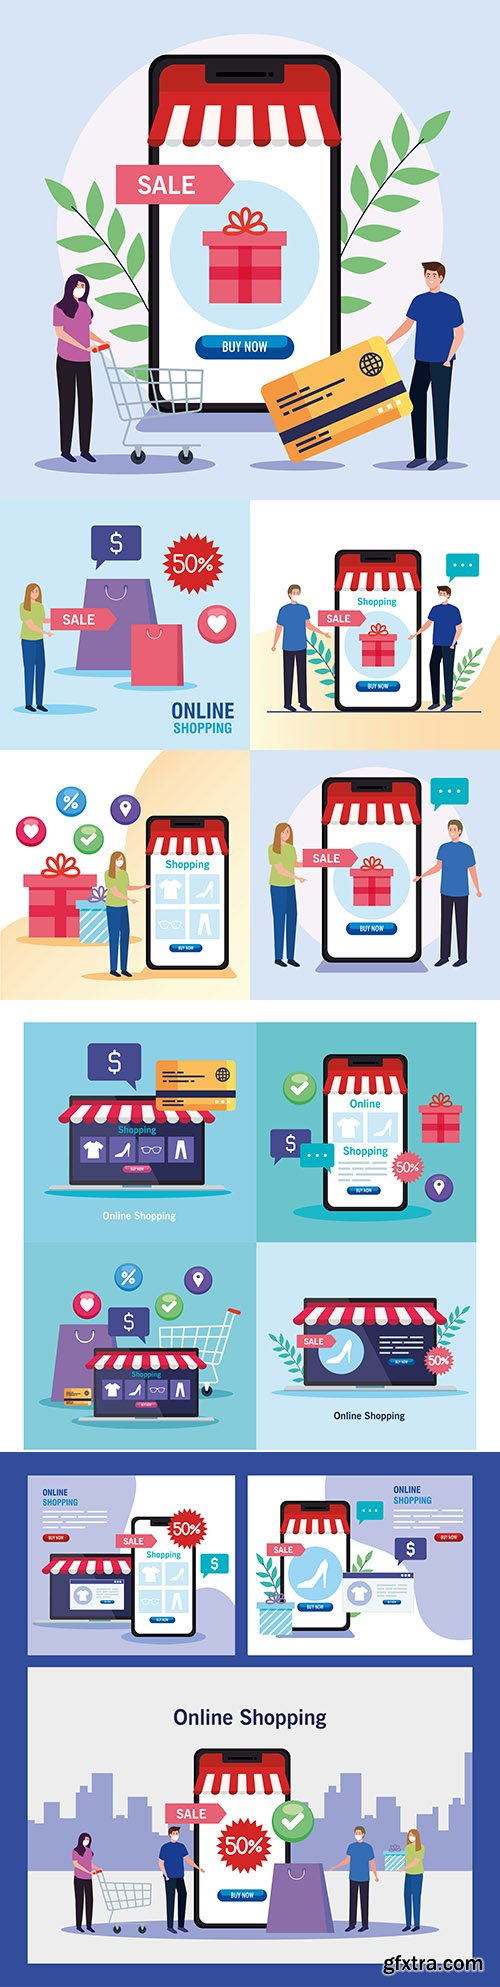 Shopping online e-commerce market and retail illustration